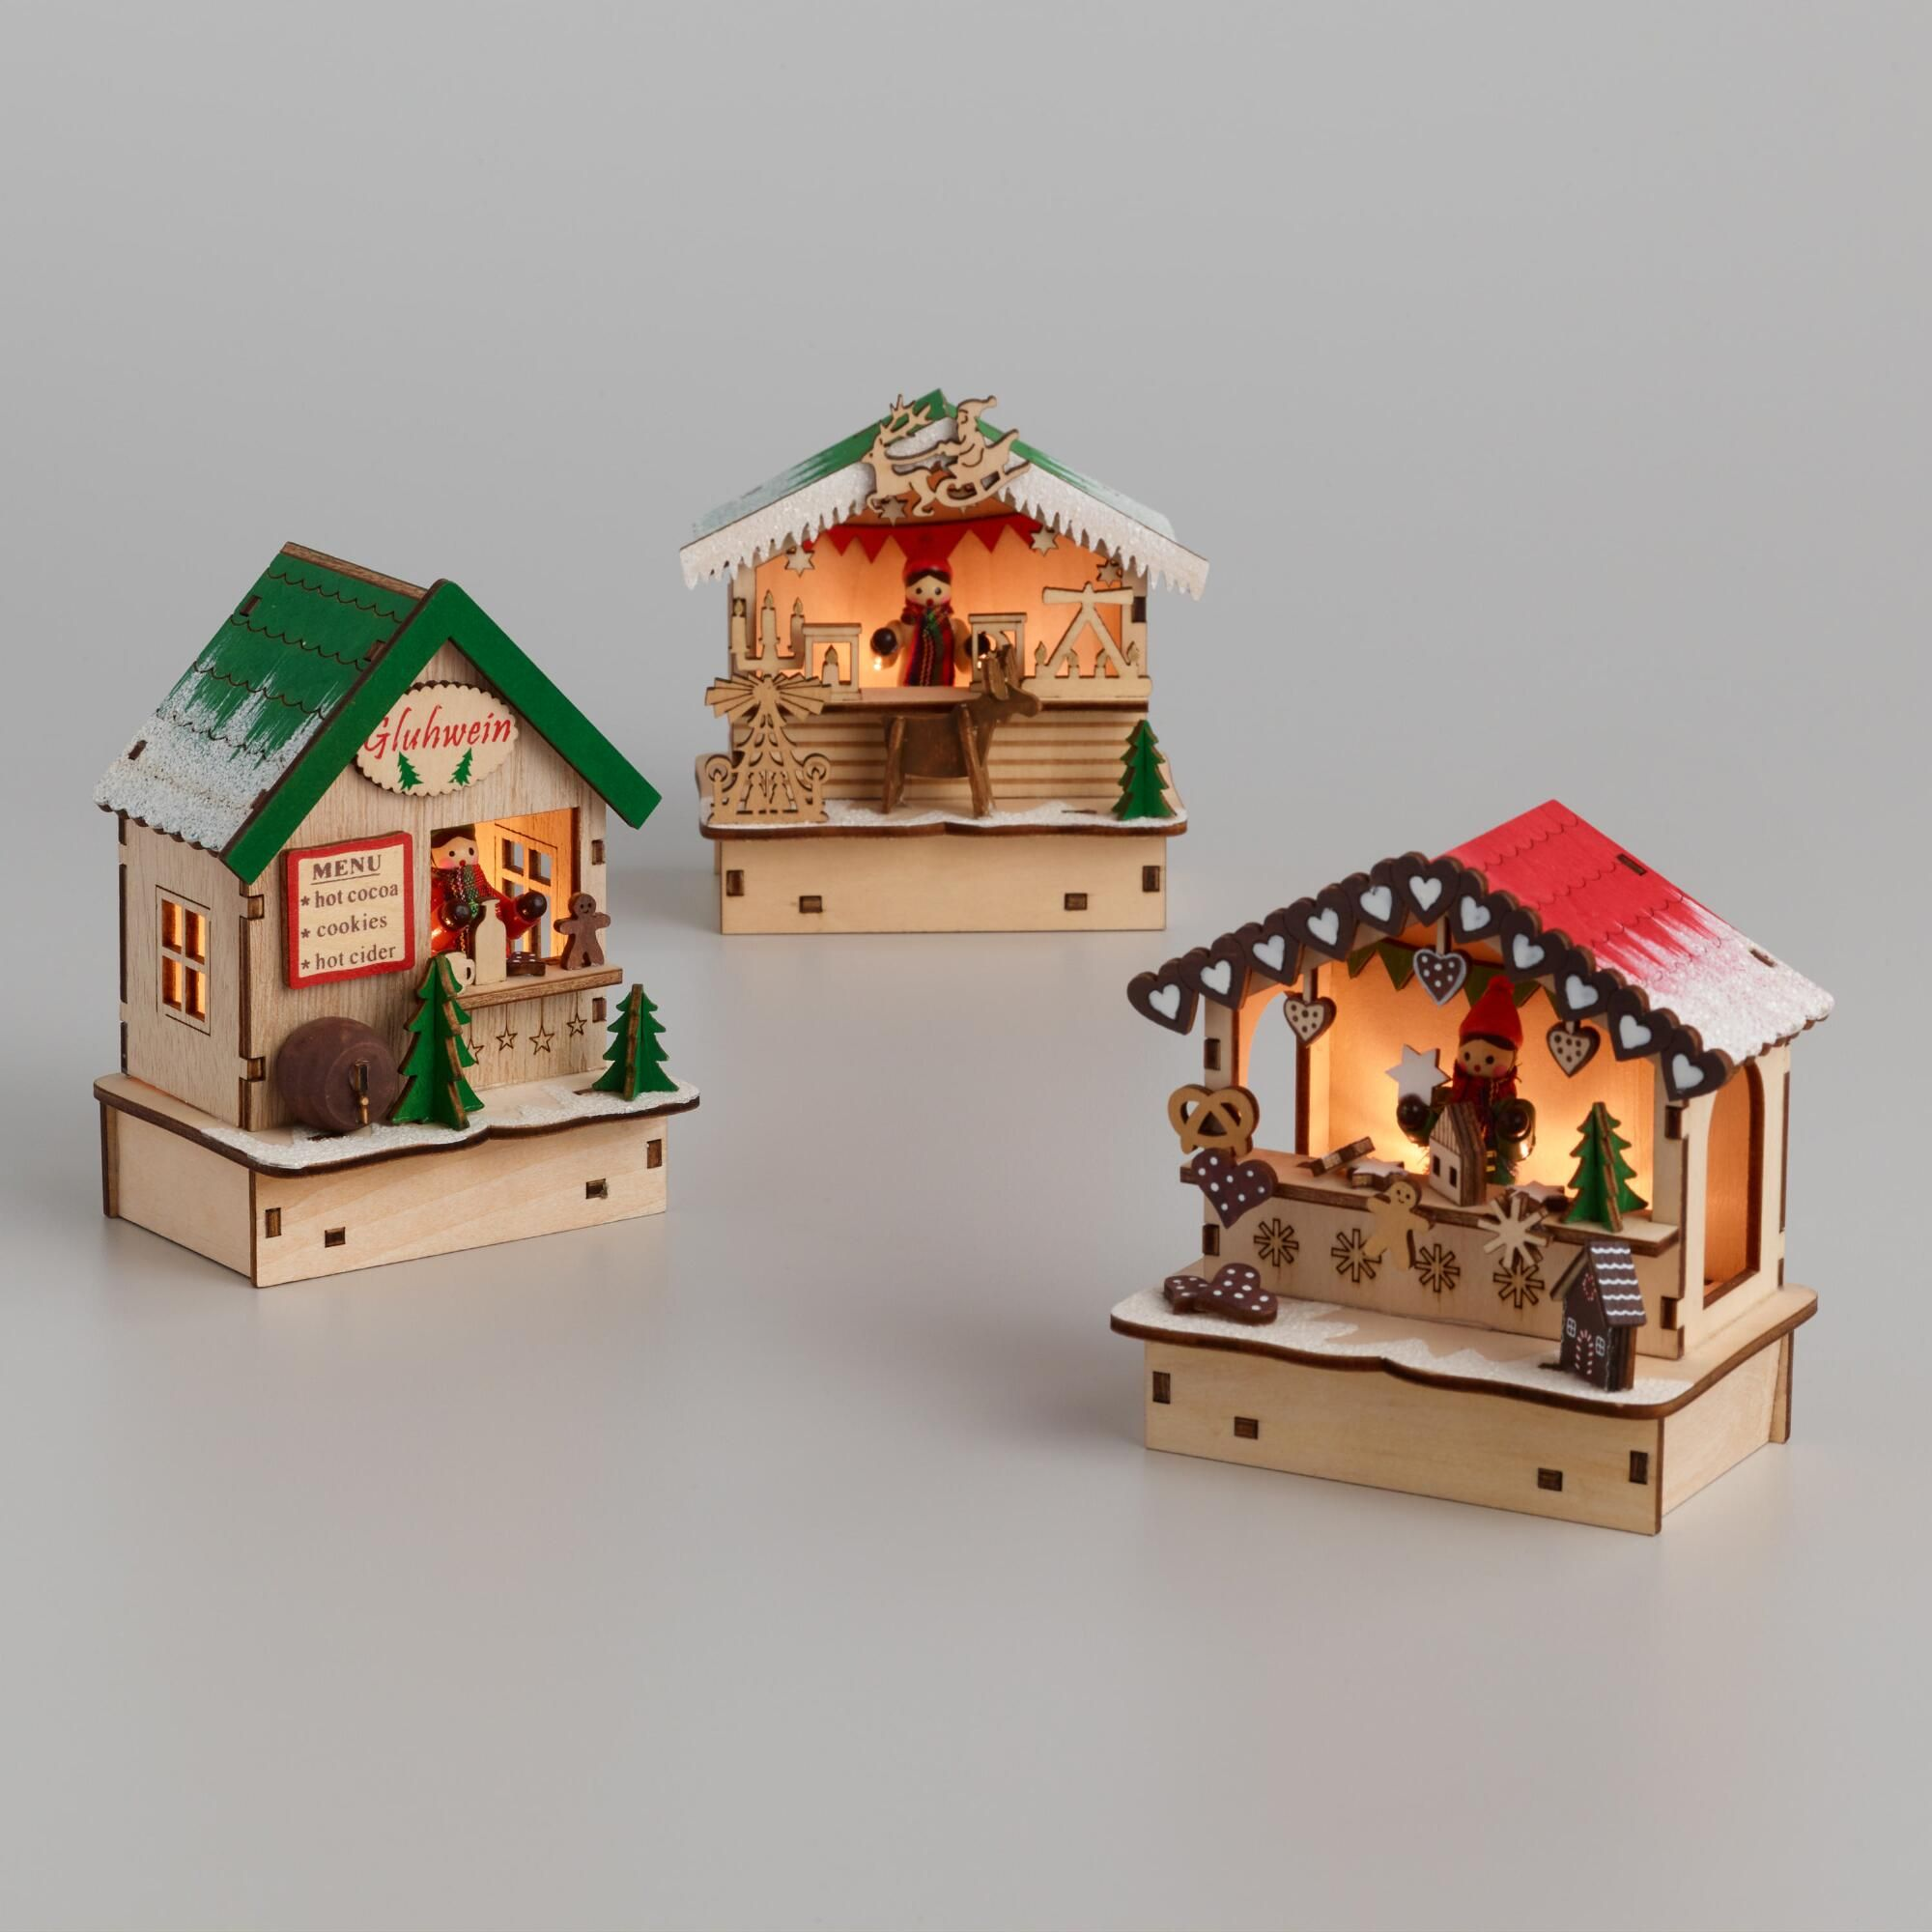 1 x Glowing Christmas Wooden Timber House Lantern Decoration Hanging Ornament